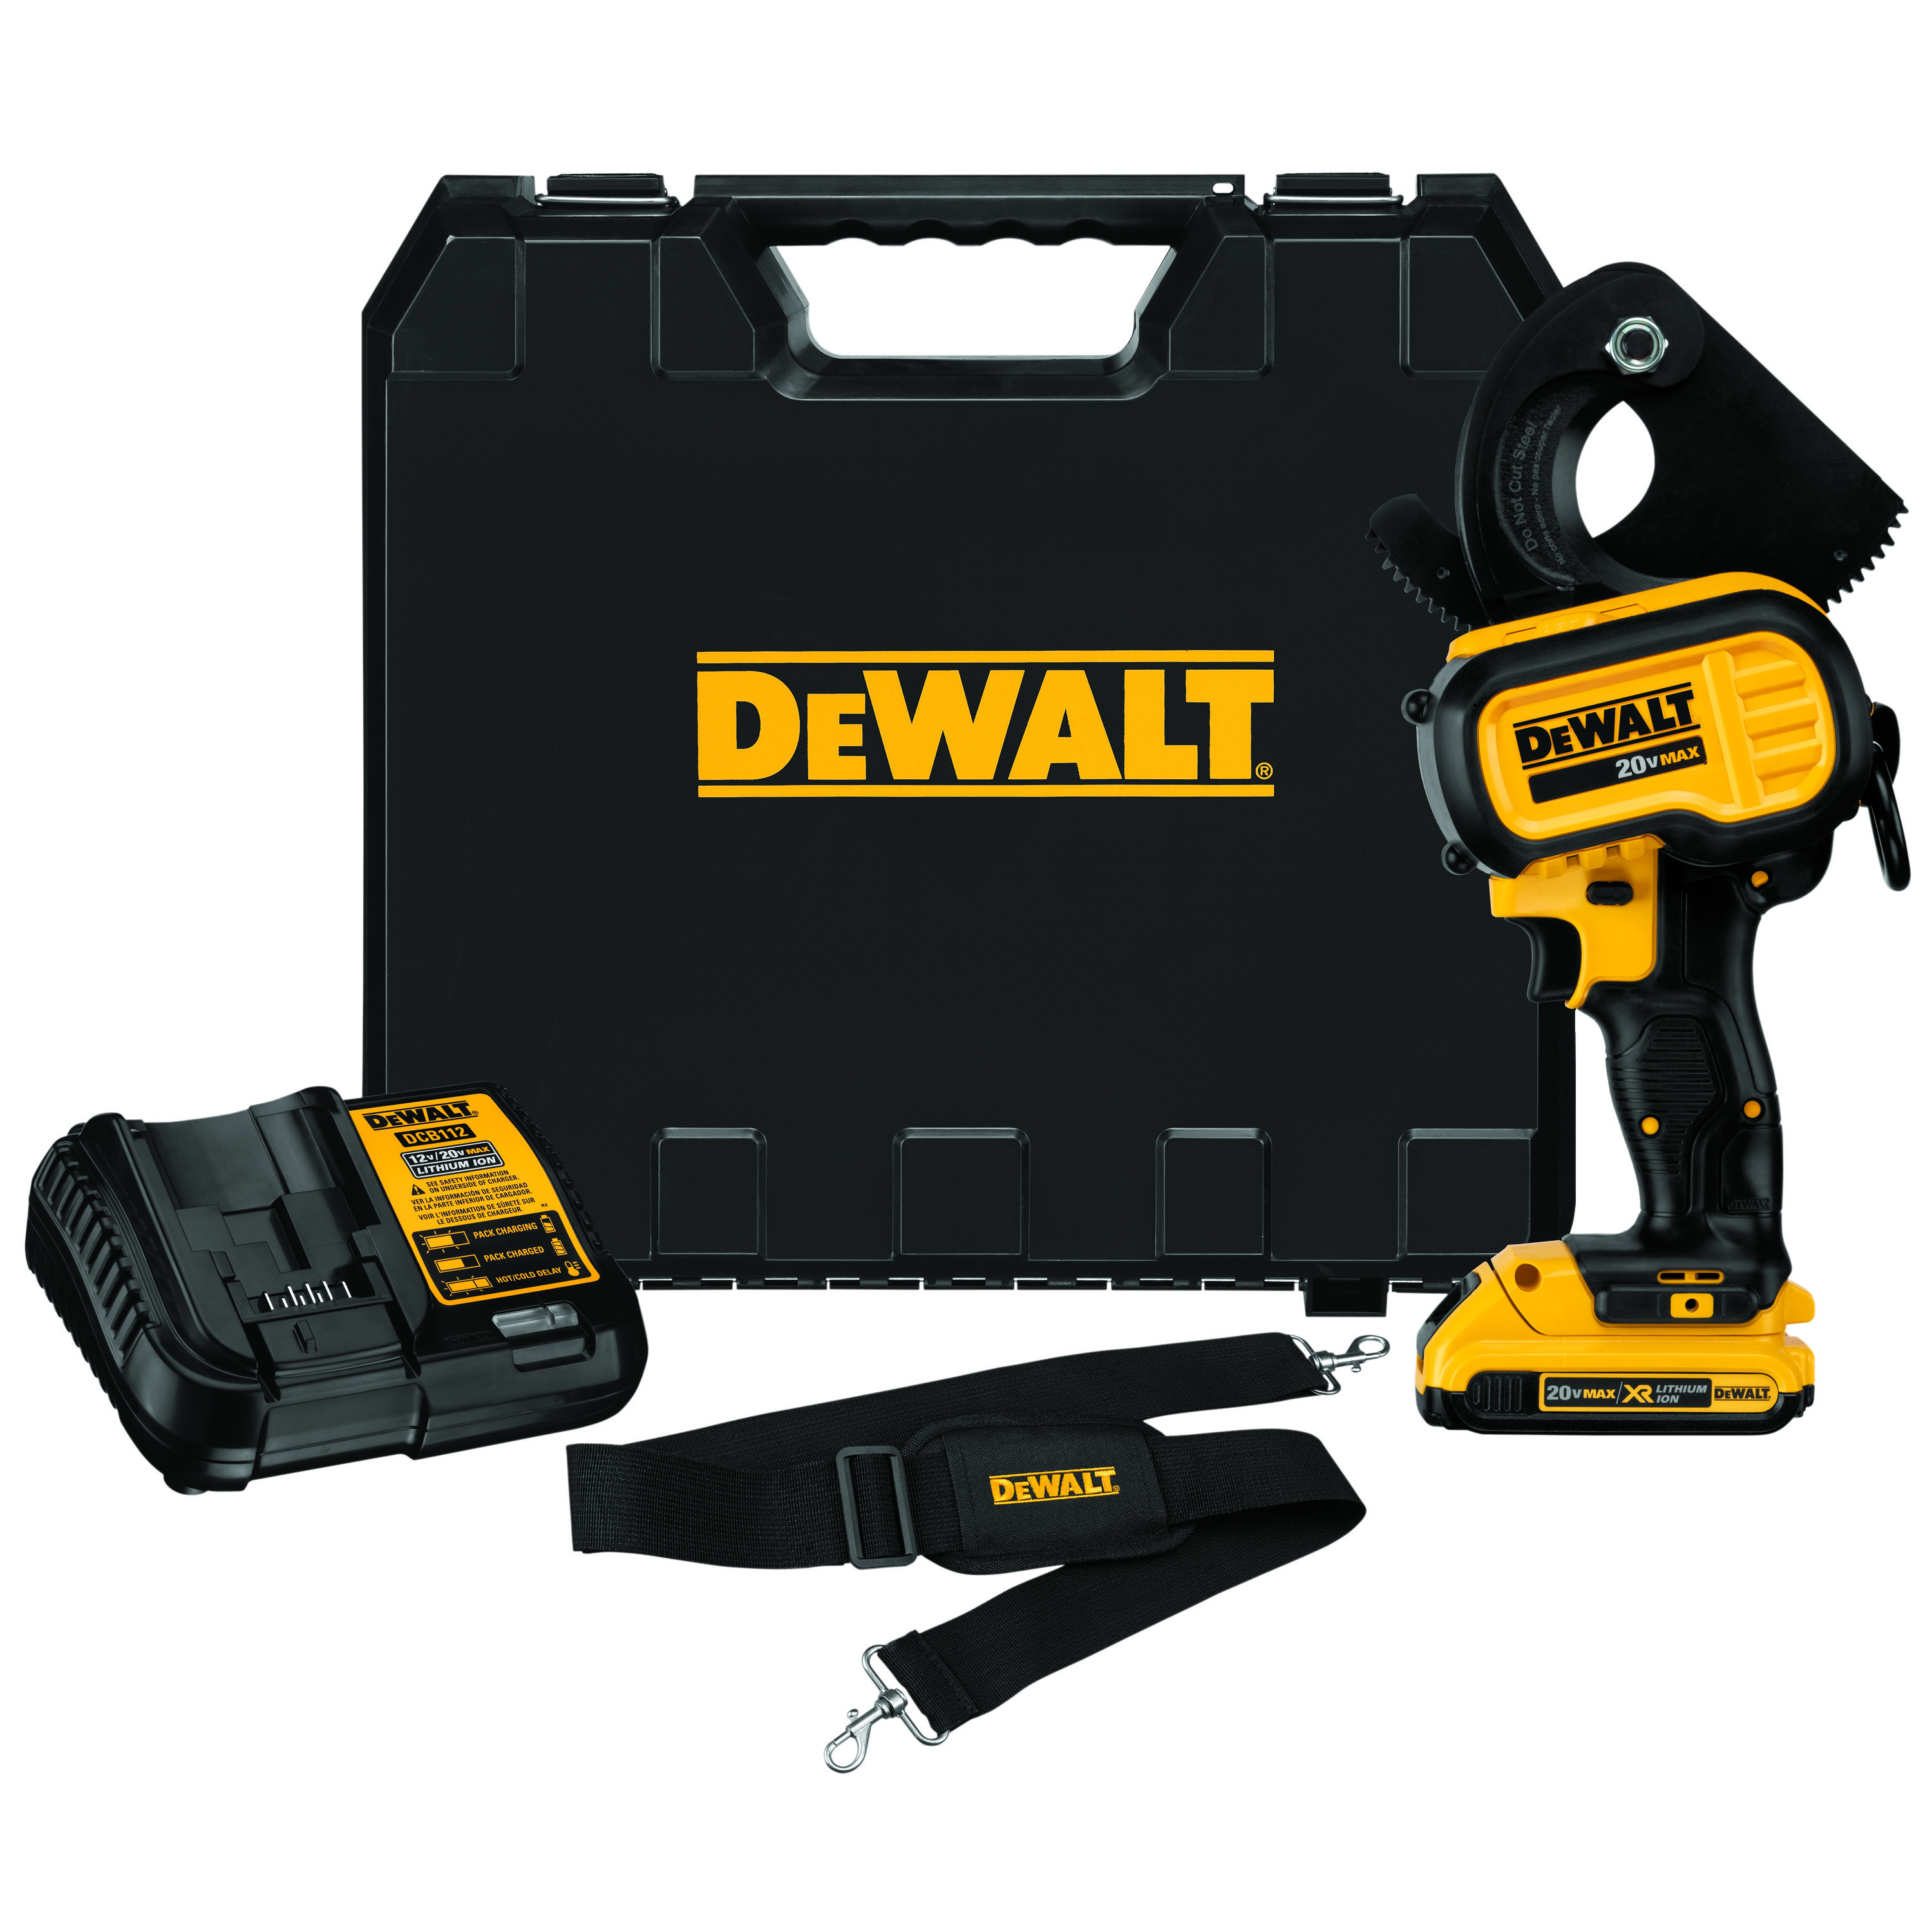 DeWALT® DCE150D1 Cordless Cable Cutting Tool Kit, 750 kcmil Copper/1000 kcmil Aluminum Cutting, 20 VDC, Lithium-Ion Battery